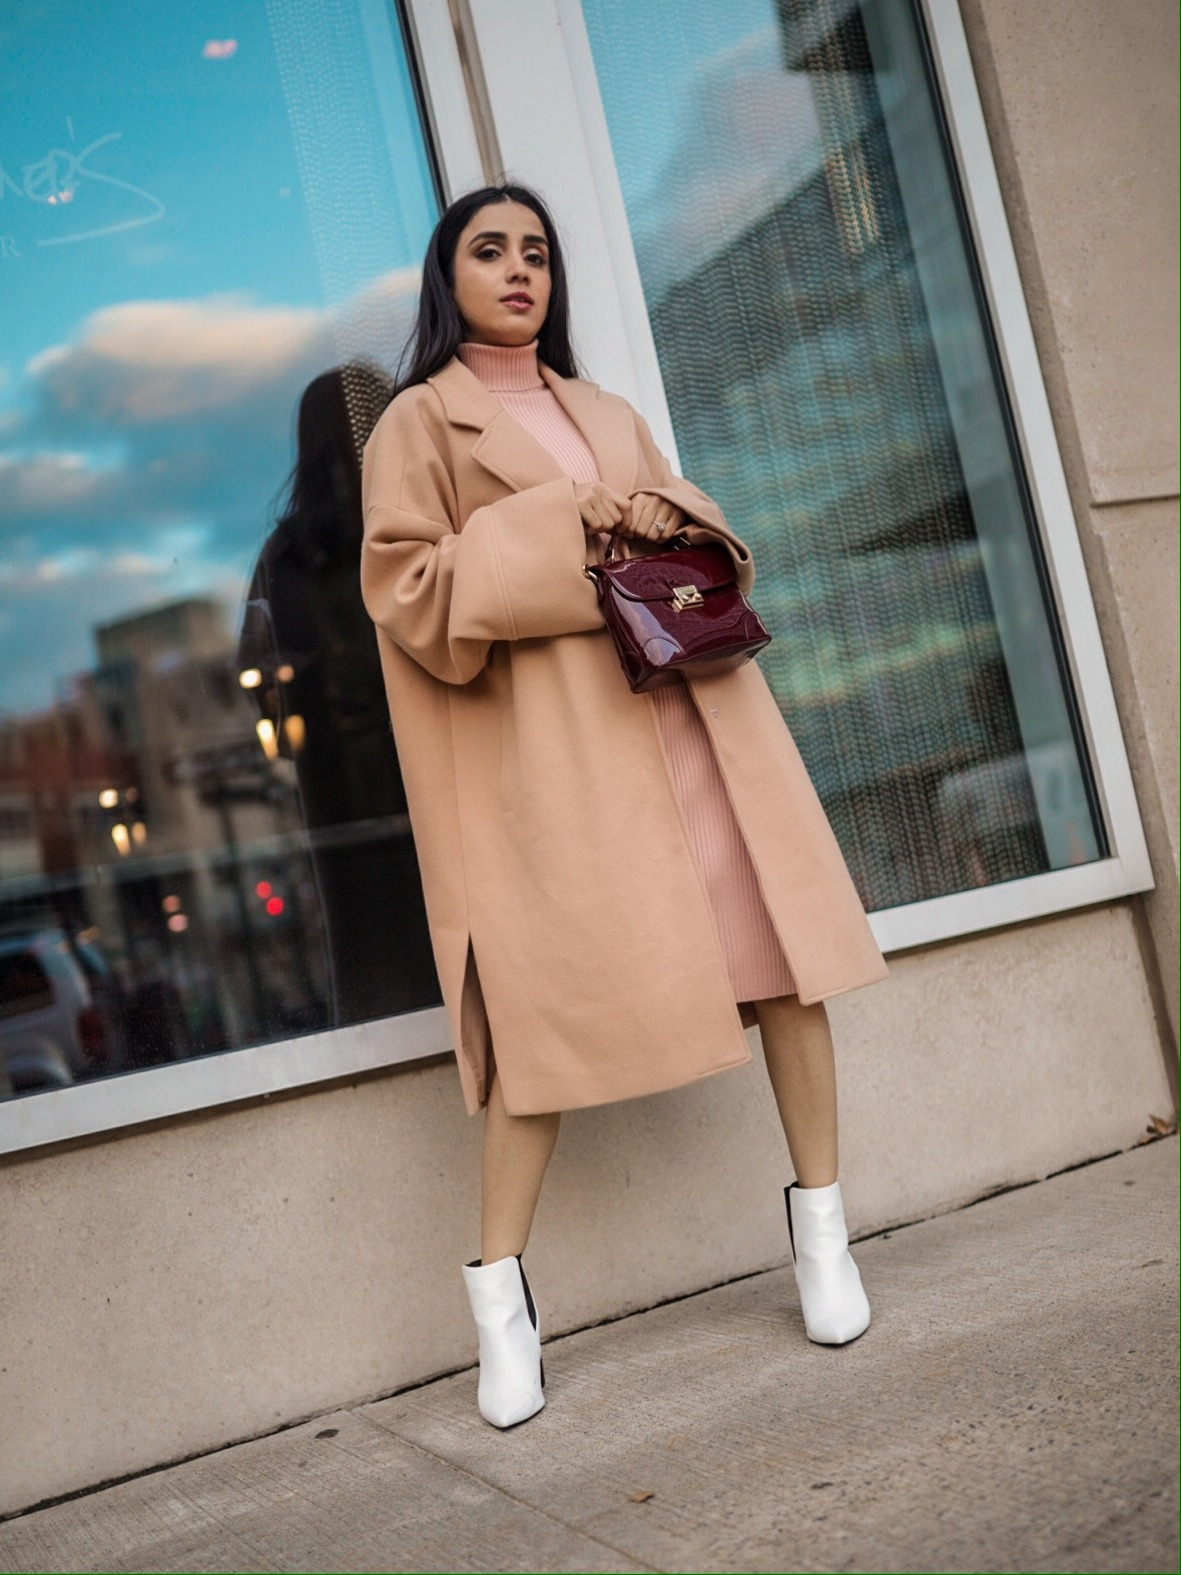 The Trendiest Winter Staples You Didn't Know You Needed Faiza Inam sincerelyhumble wintet cold style staples look sweater dress 3